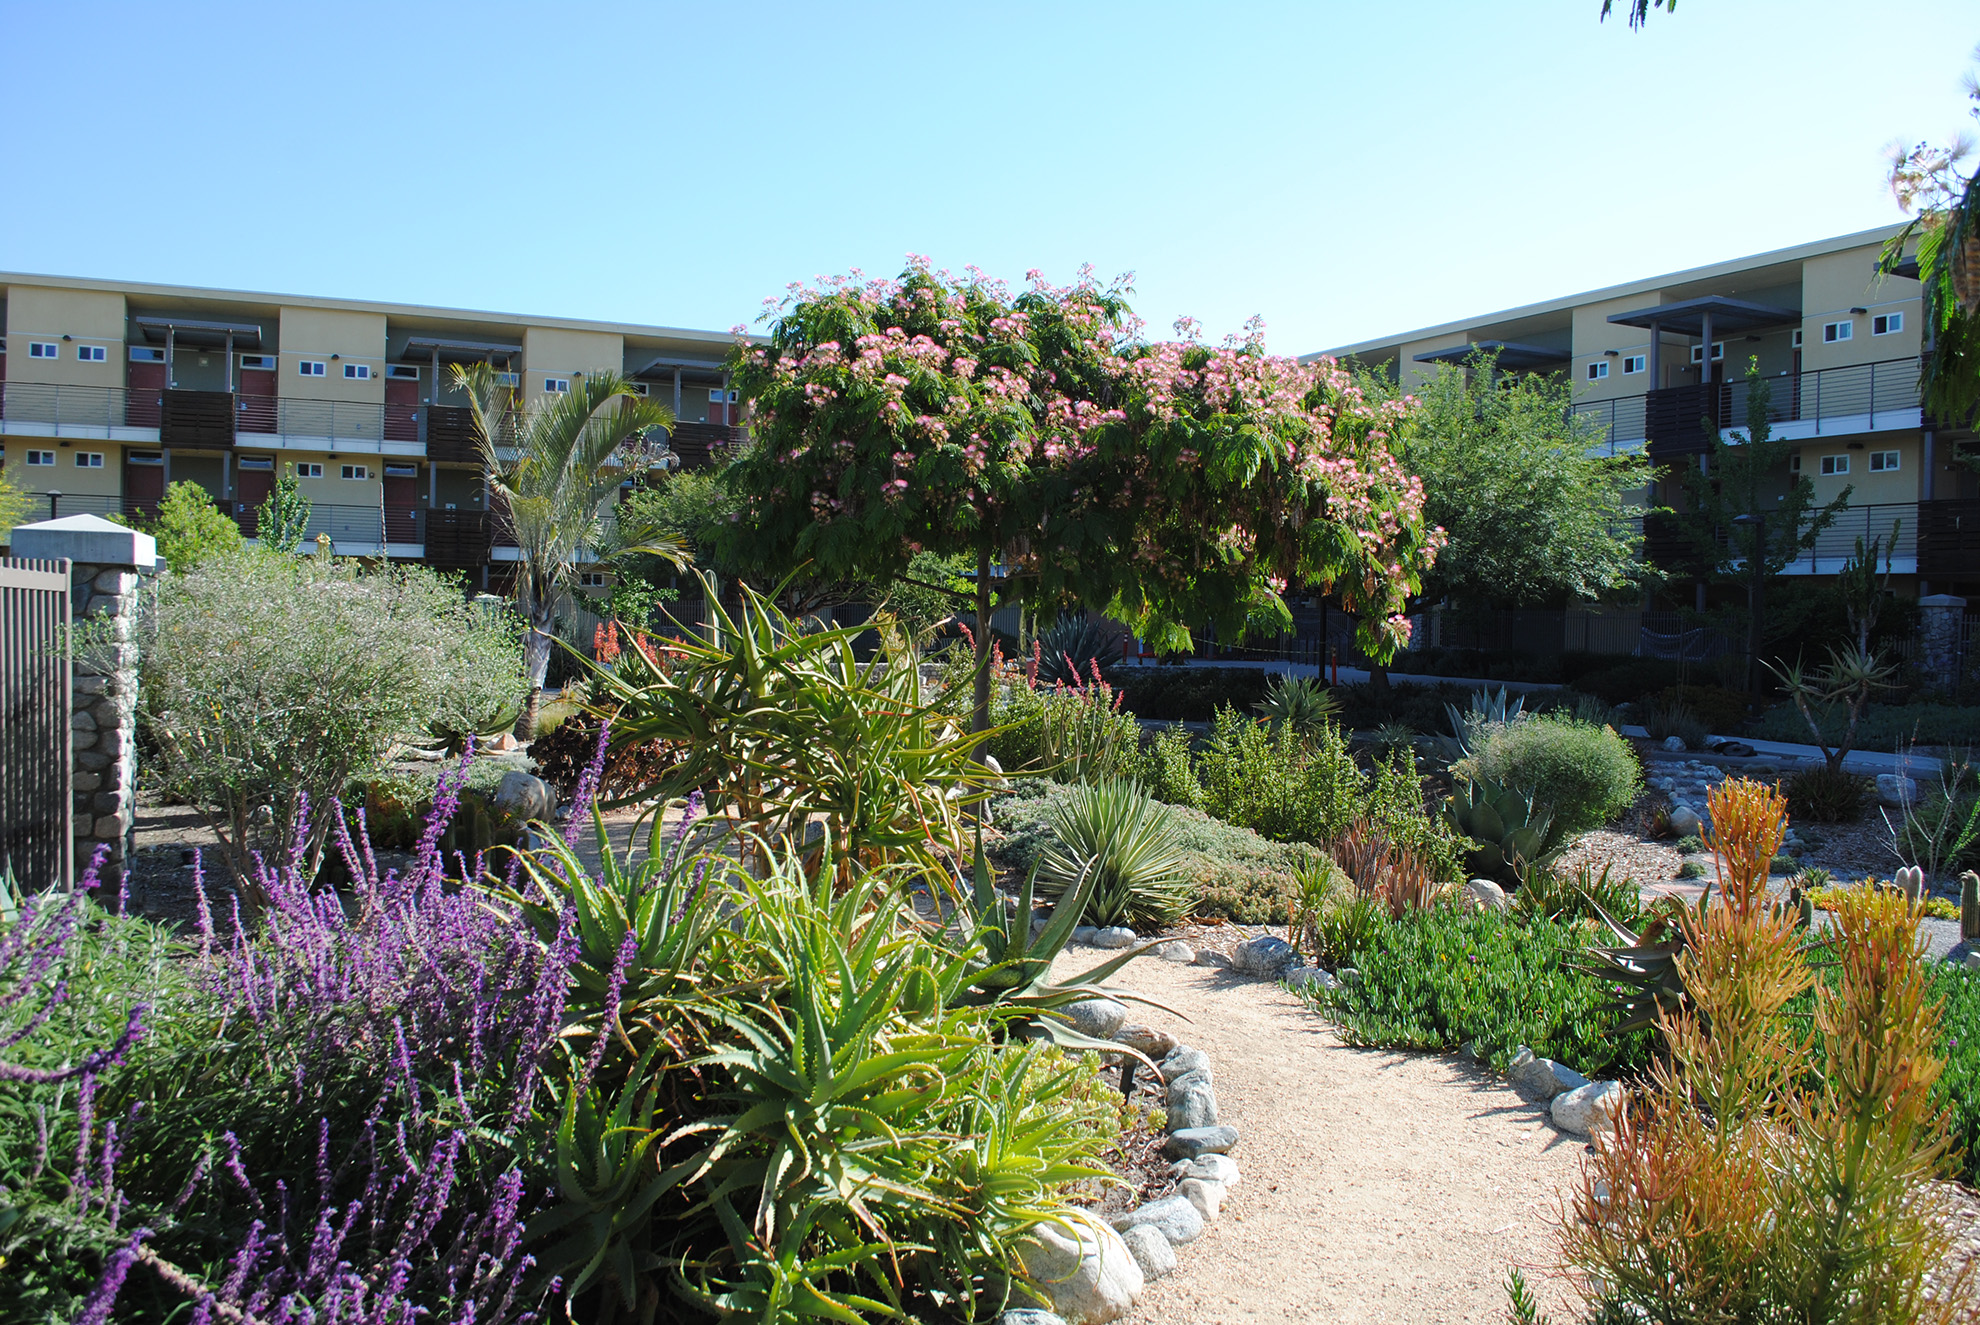 Gardens surrounded by Pitzer, Atherton and Sanborn Halls